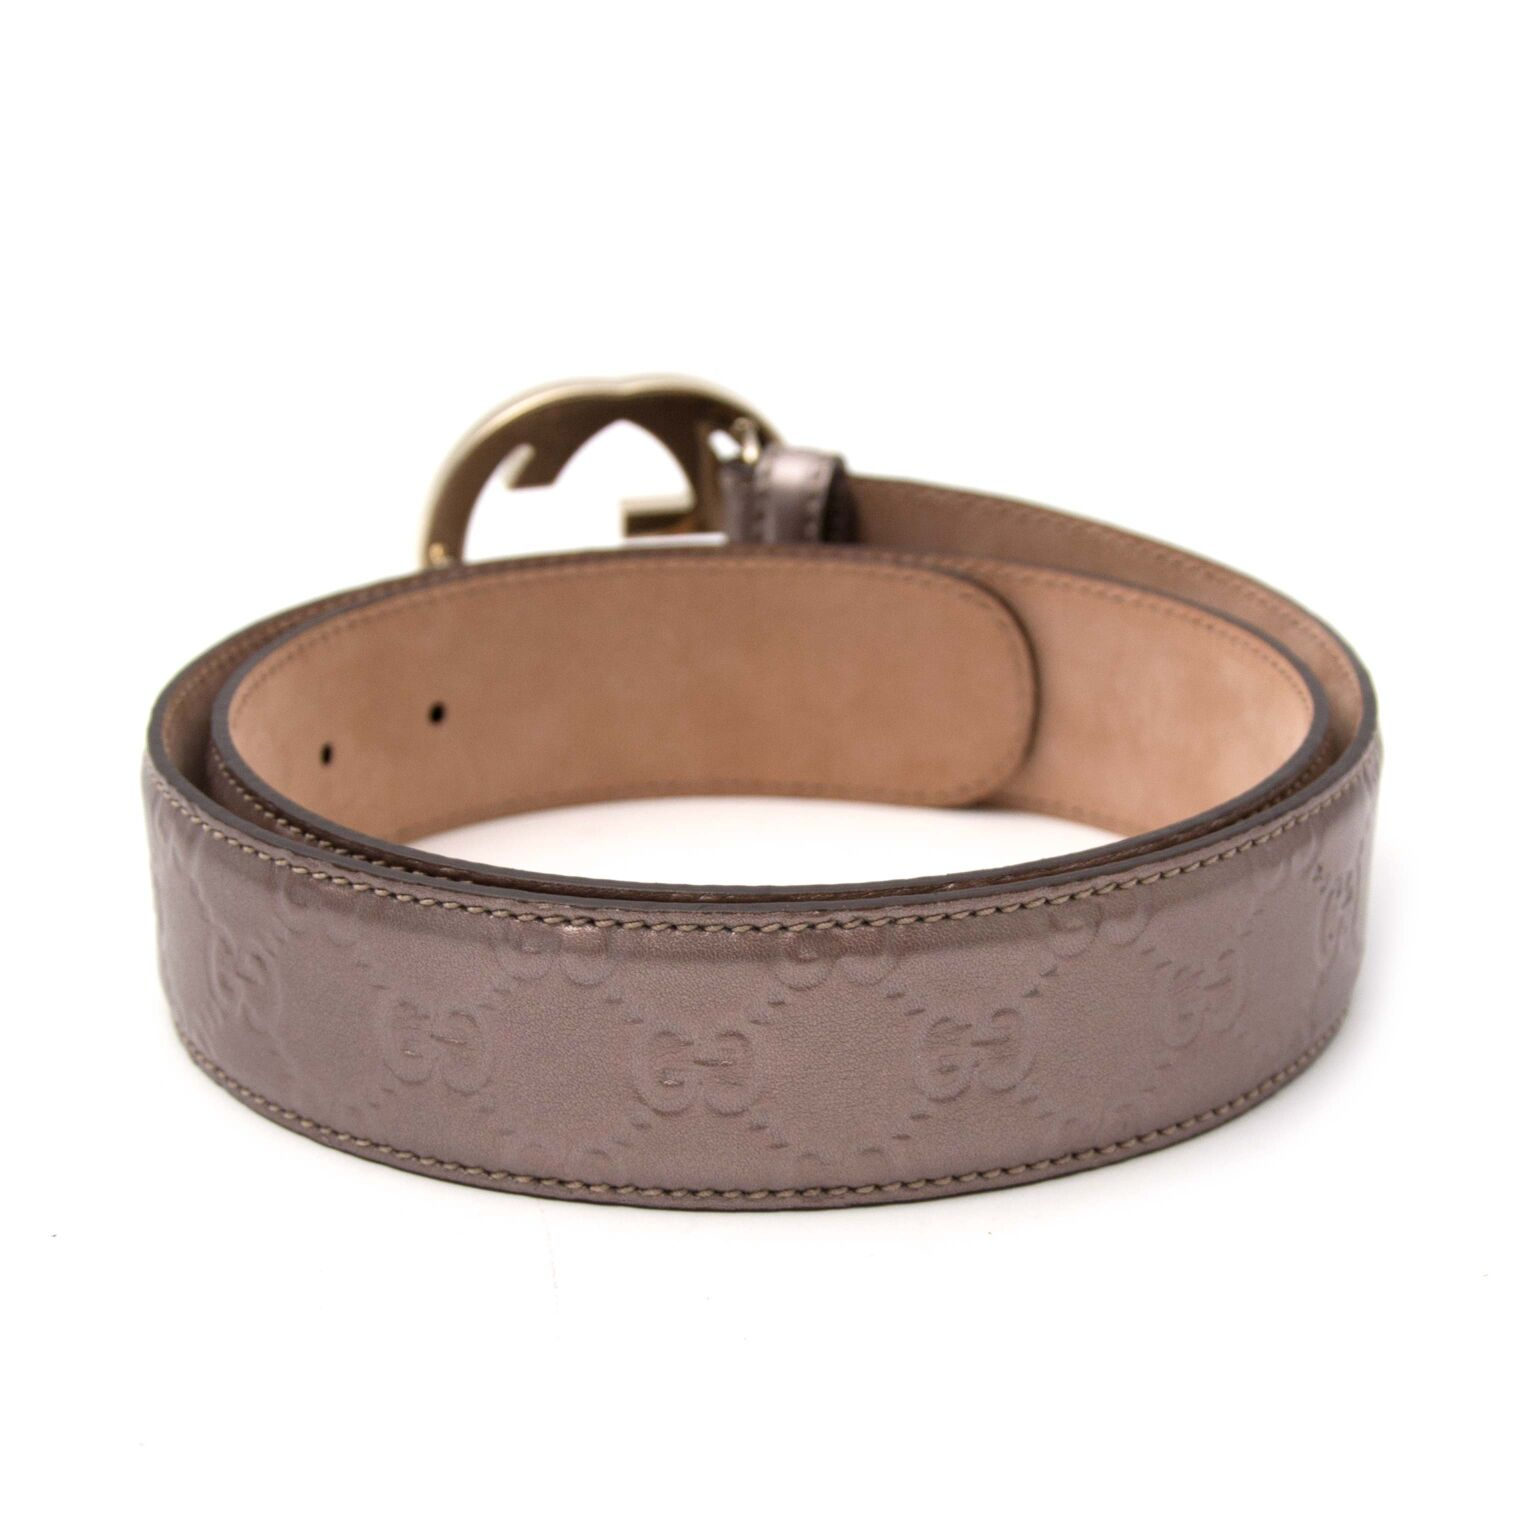 Buy now a beautiful taupe beld from Gucci on the online webshop labellov.com